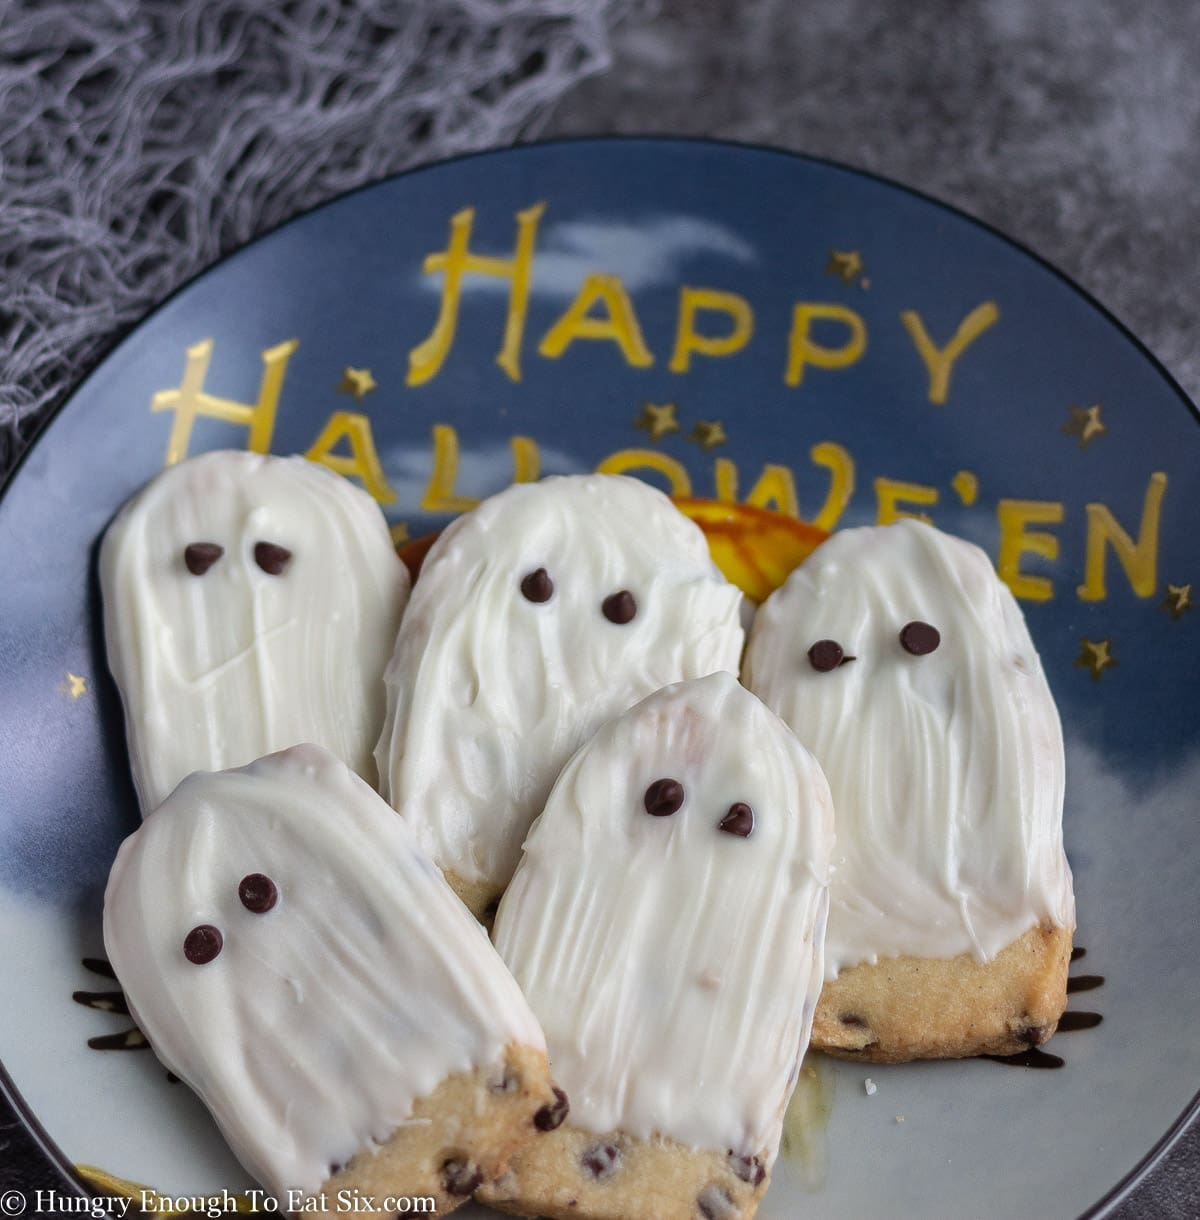 Halloween decorated plate holding 5 white ghost cookies